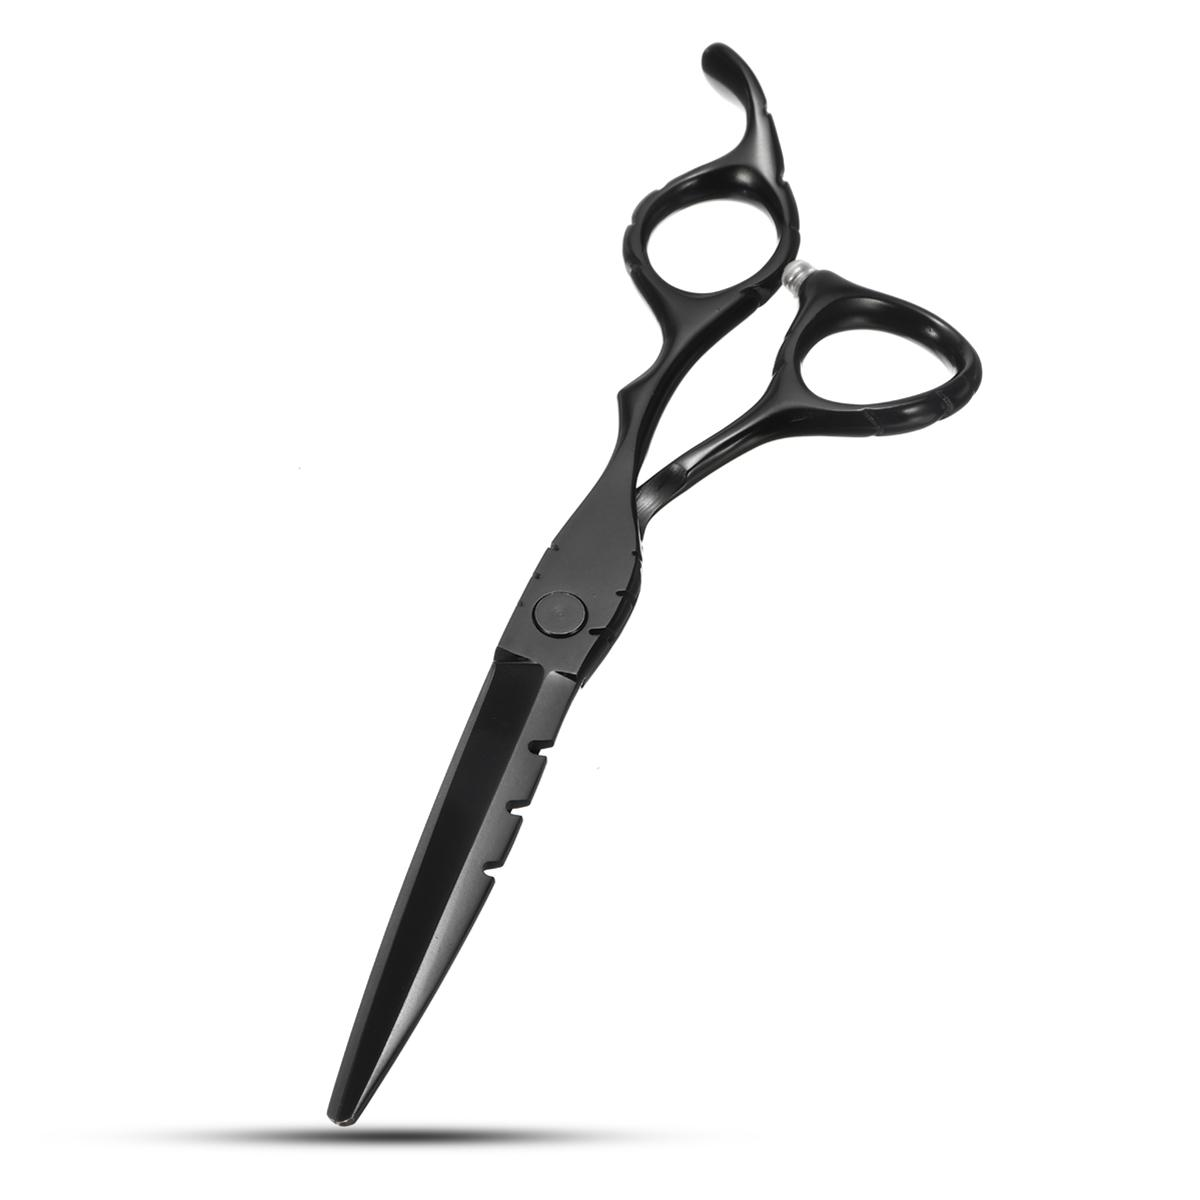 Black Hairdressing Straight Thinning Styling Scissors Professional Hair Cutting Tartnes Shears Flat Teeth Blades Tool